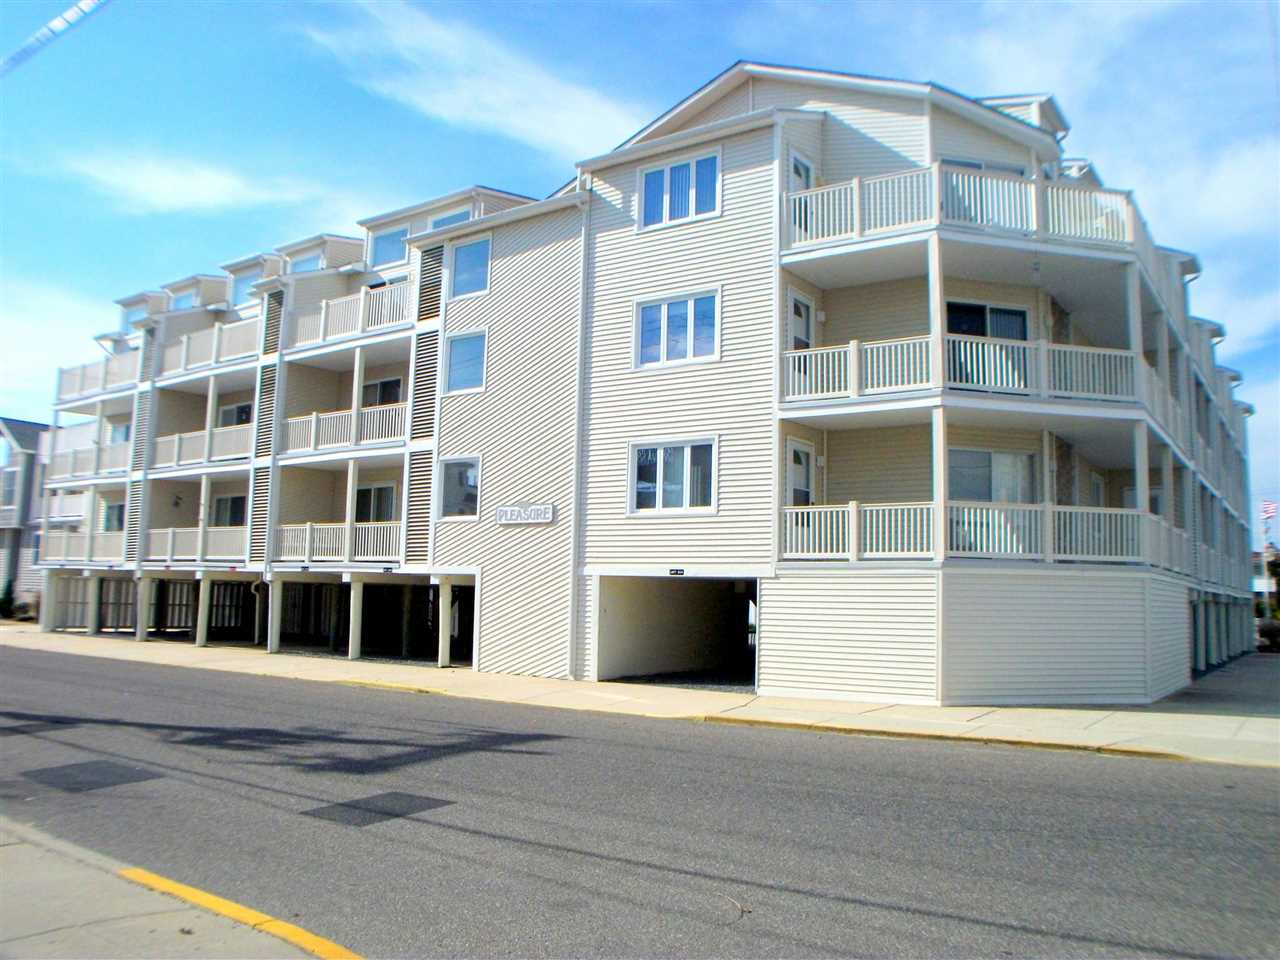 4400, #104 Pleasure, Sea Isle City